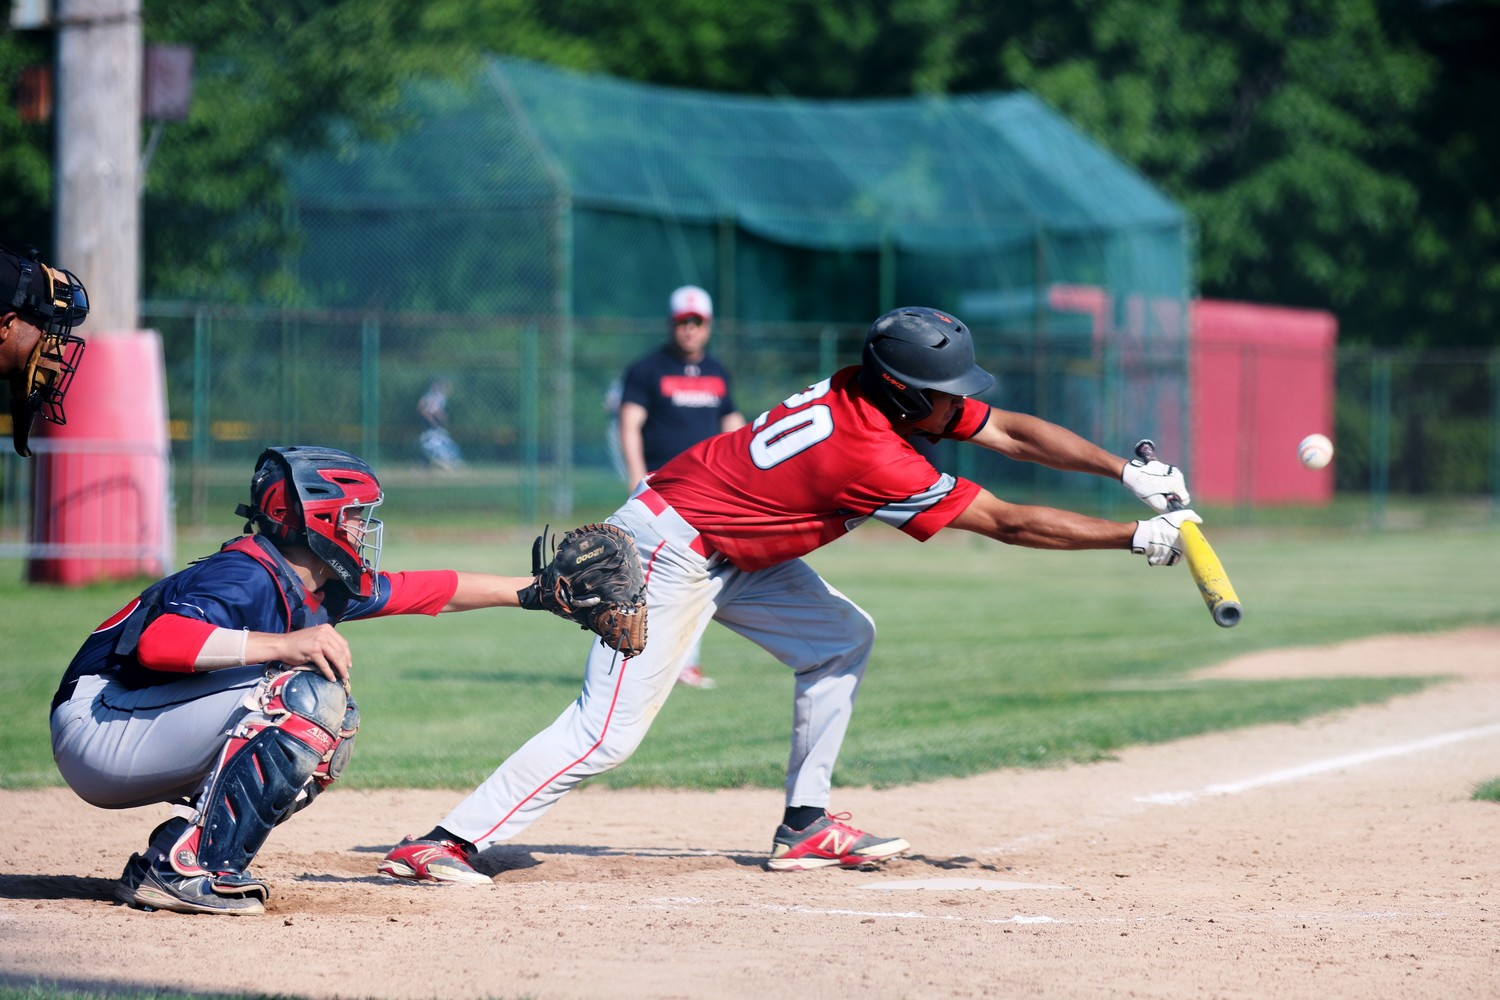 Laying down a bunt for EP in playoff action.